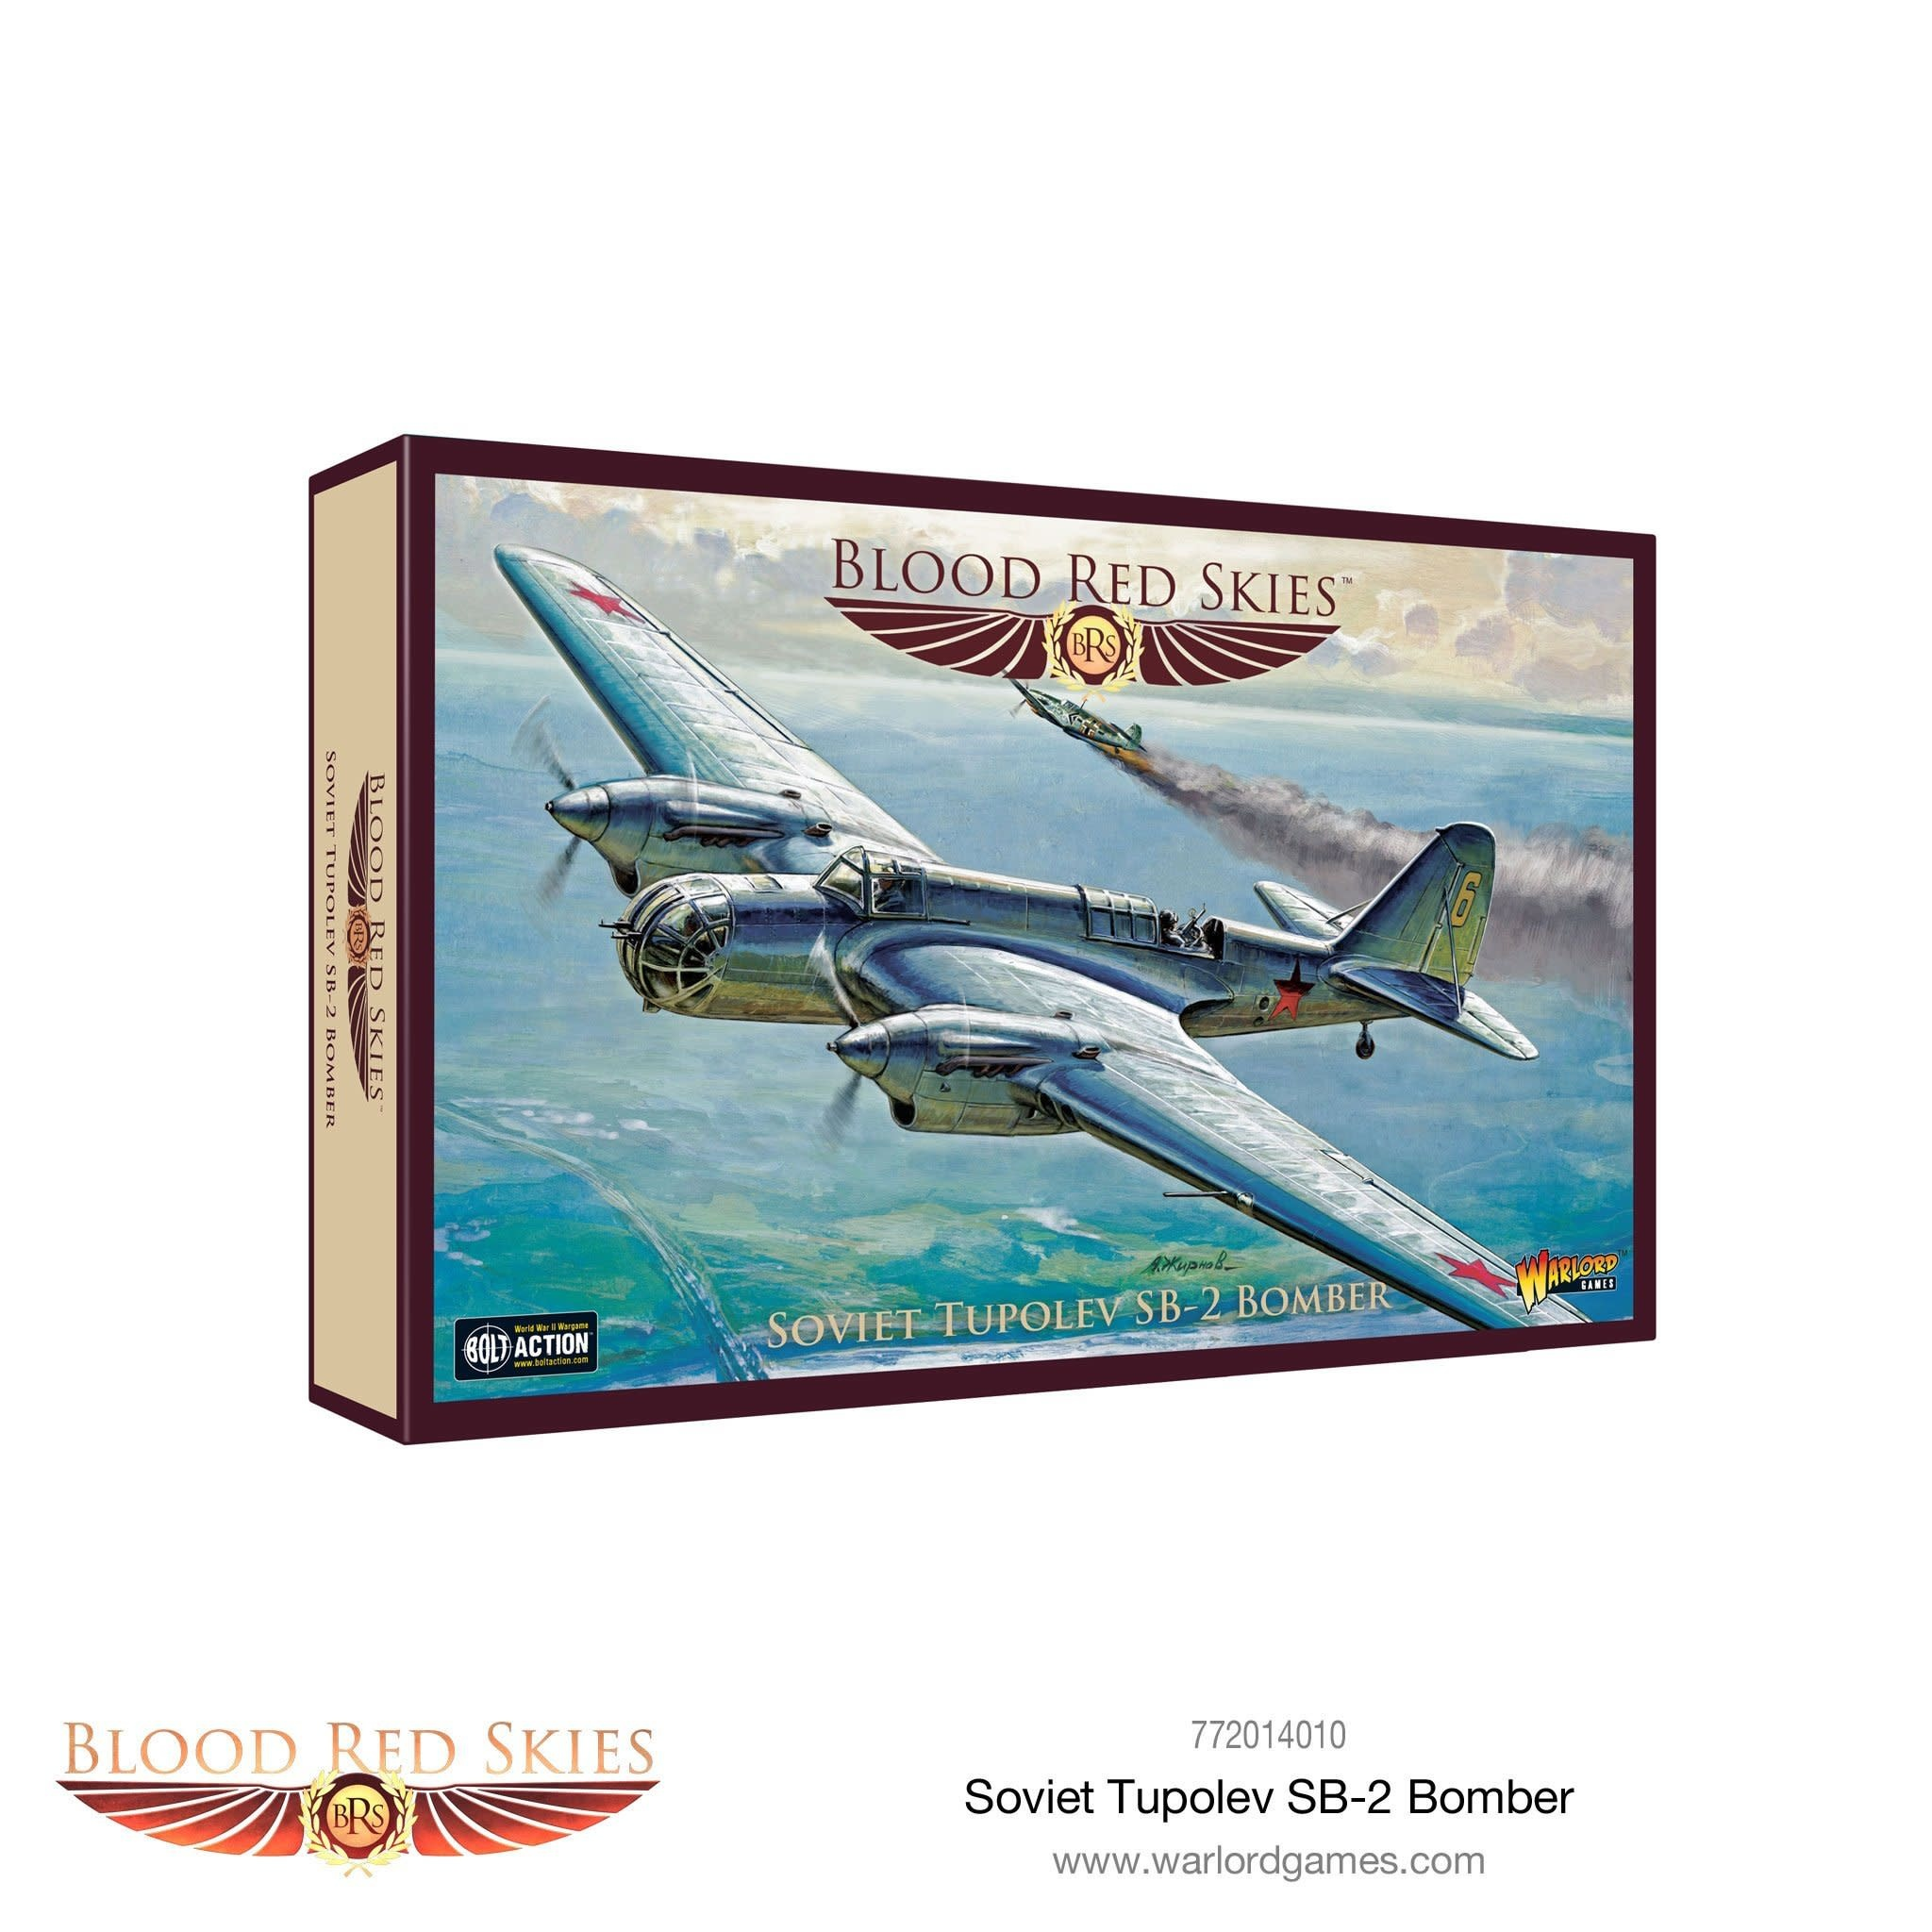 Warlord games Blood Red Skies: Soviet Tupolev SB-2 Bomber